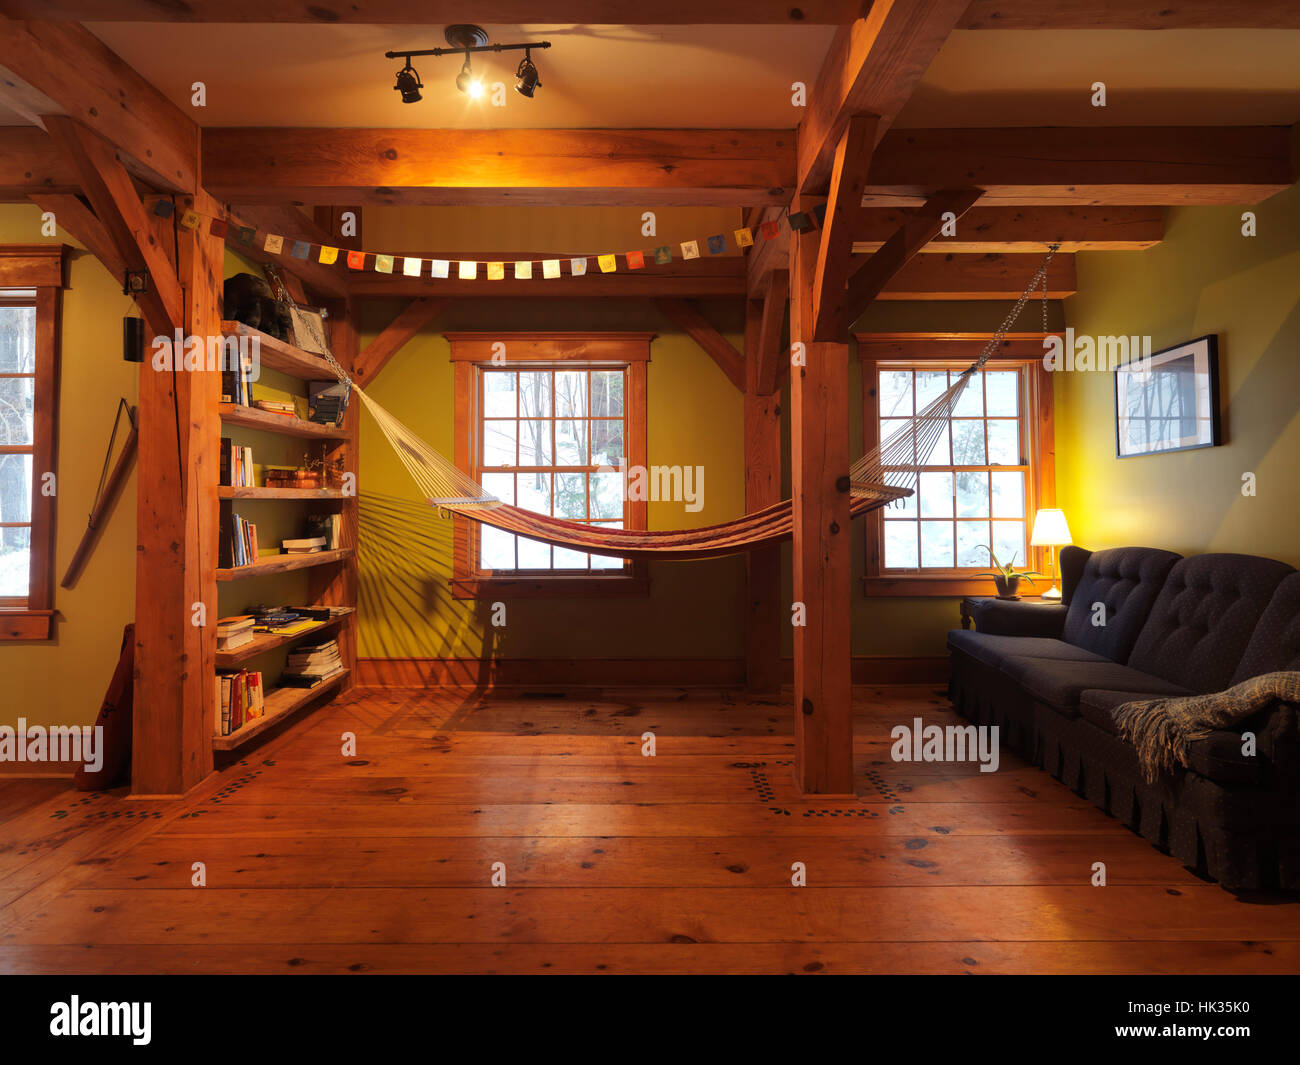 Lounge room with a hammock in a Canadian timber frame country house, interior with a lot of wood, Muskoka, Ontario, - Stock Image